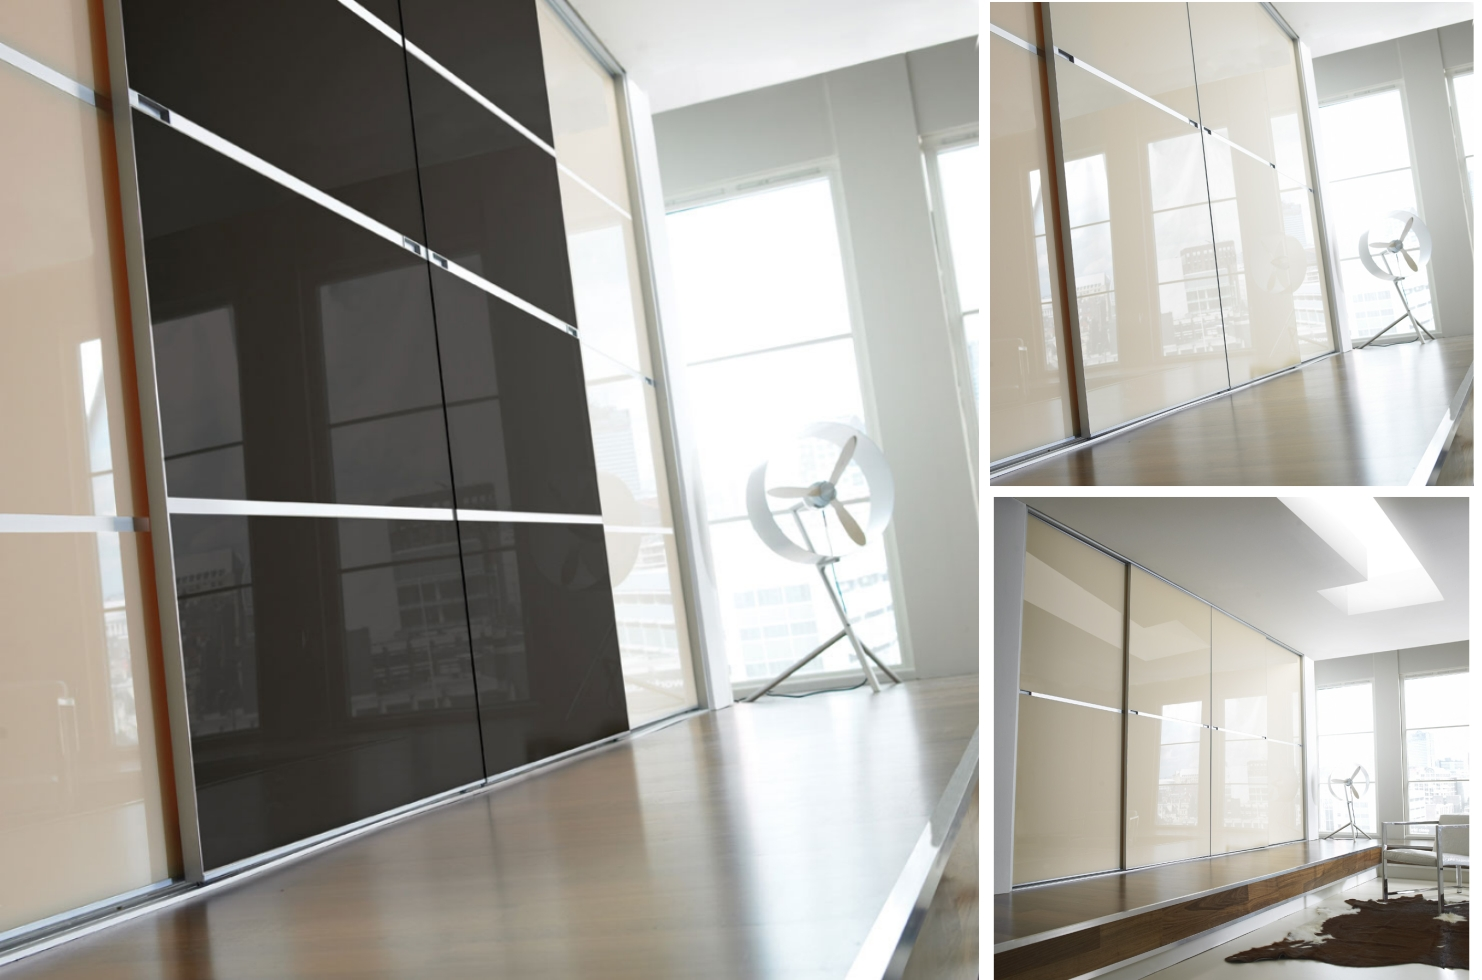 Sliding wardrobe doors and wardrobe interiors minimalist for Minimalist door design